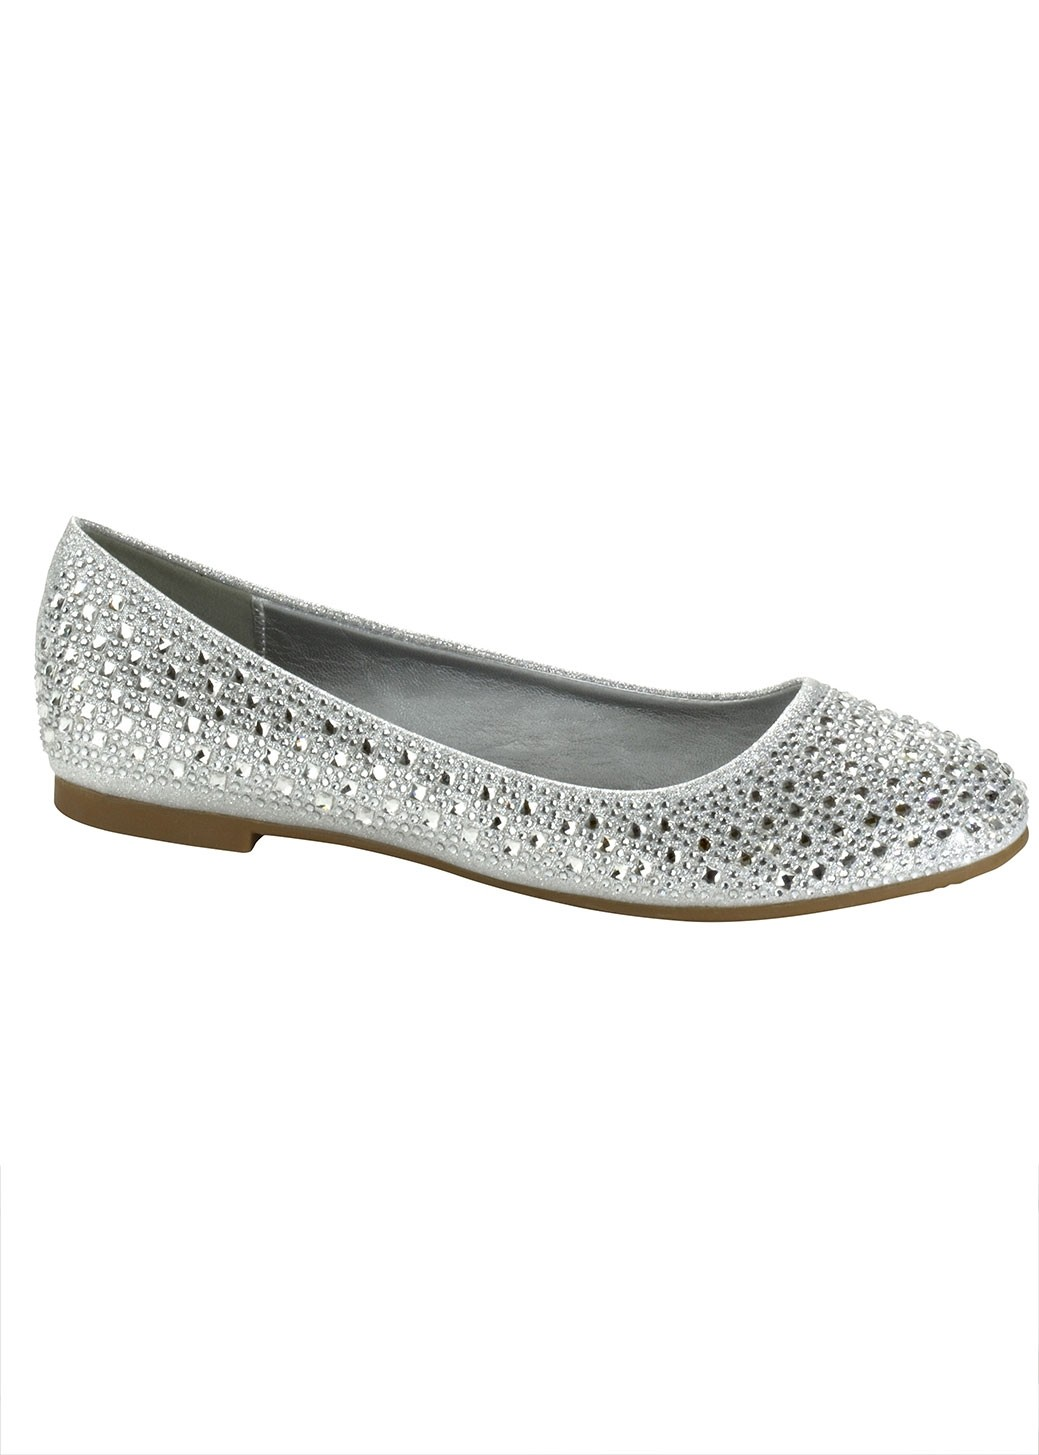 Silver Shimmer Flats